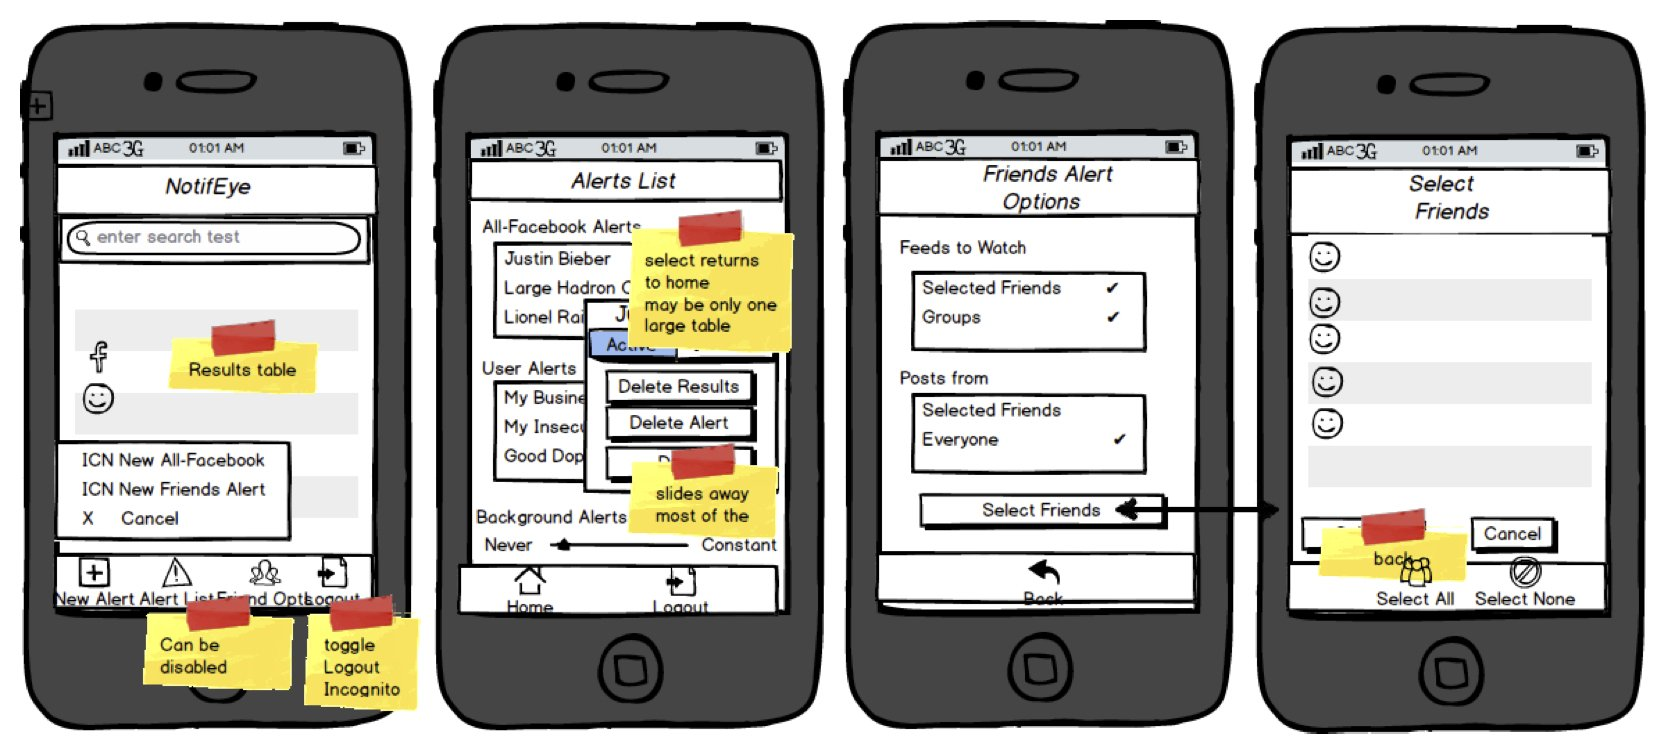 These are the types of wireframes you might want to include in your software application design document.